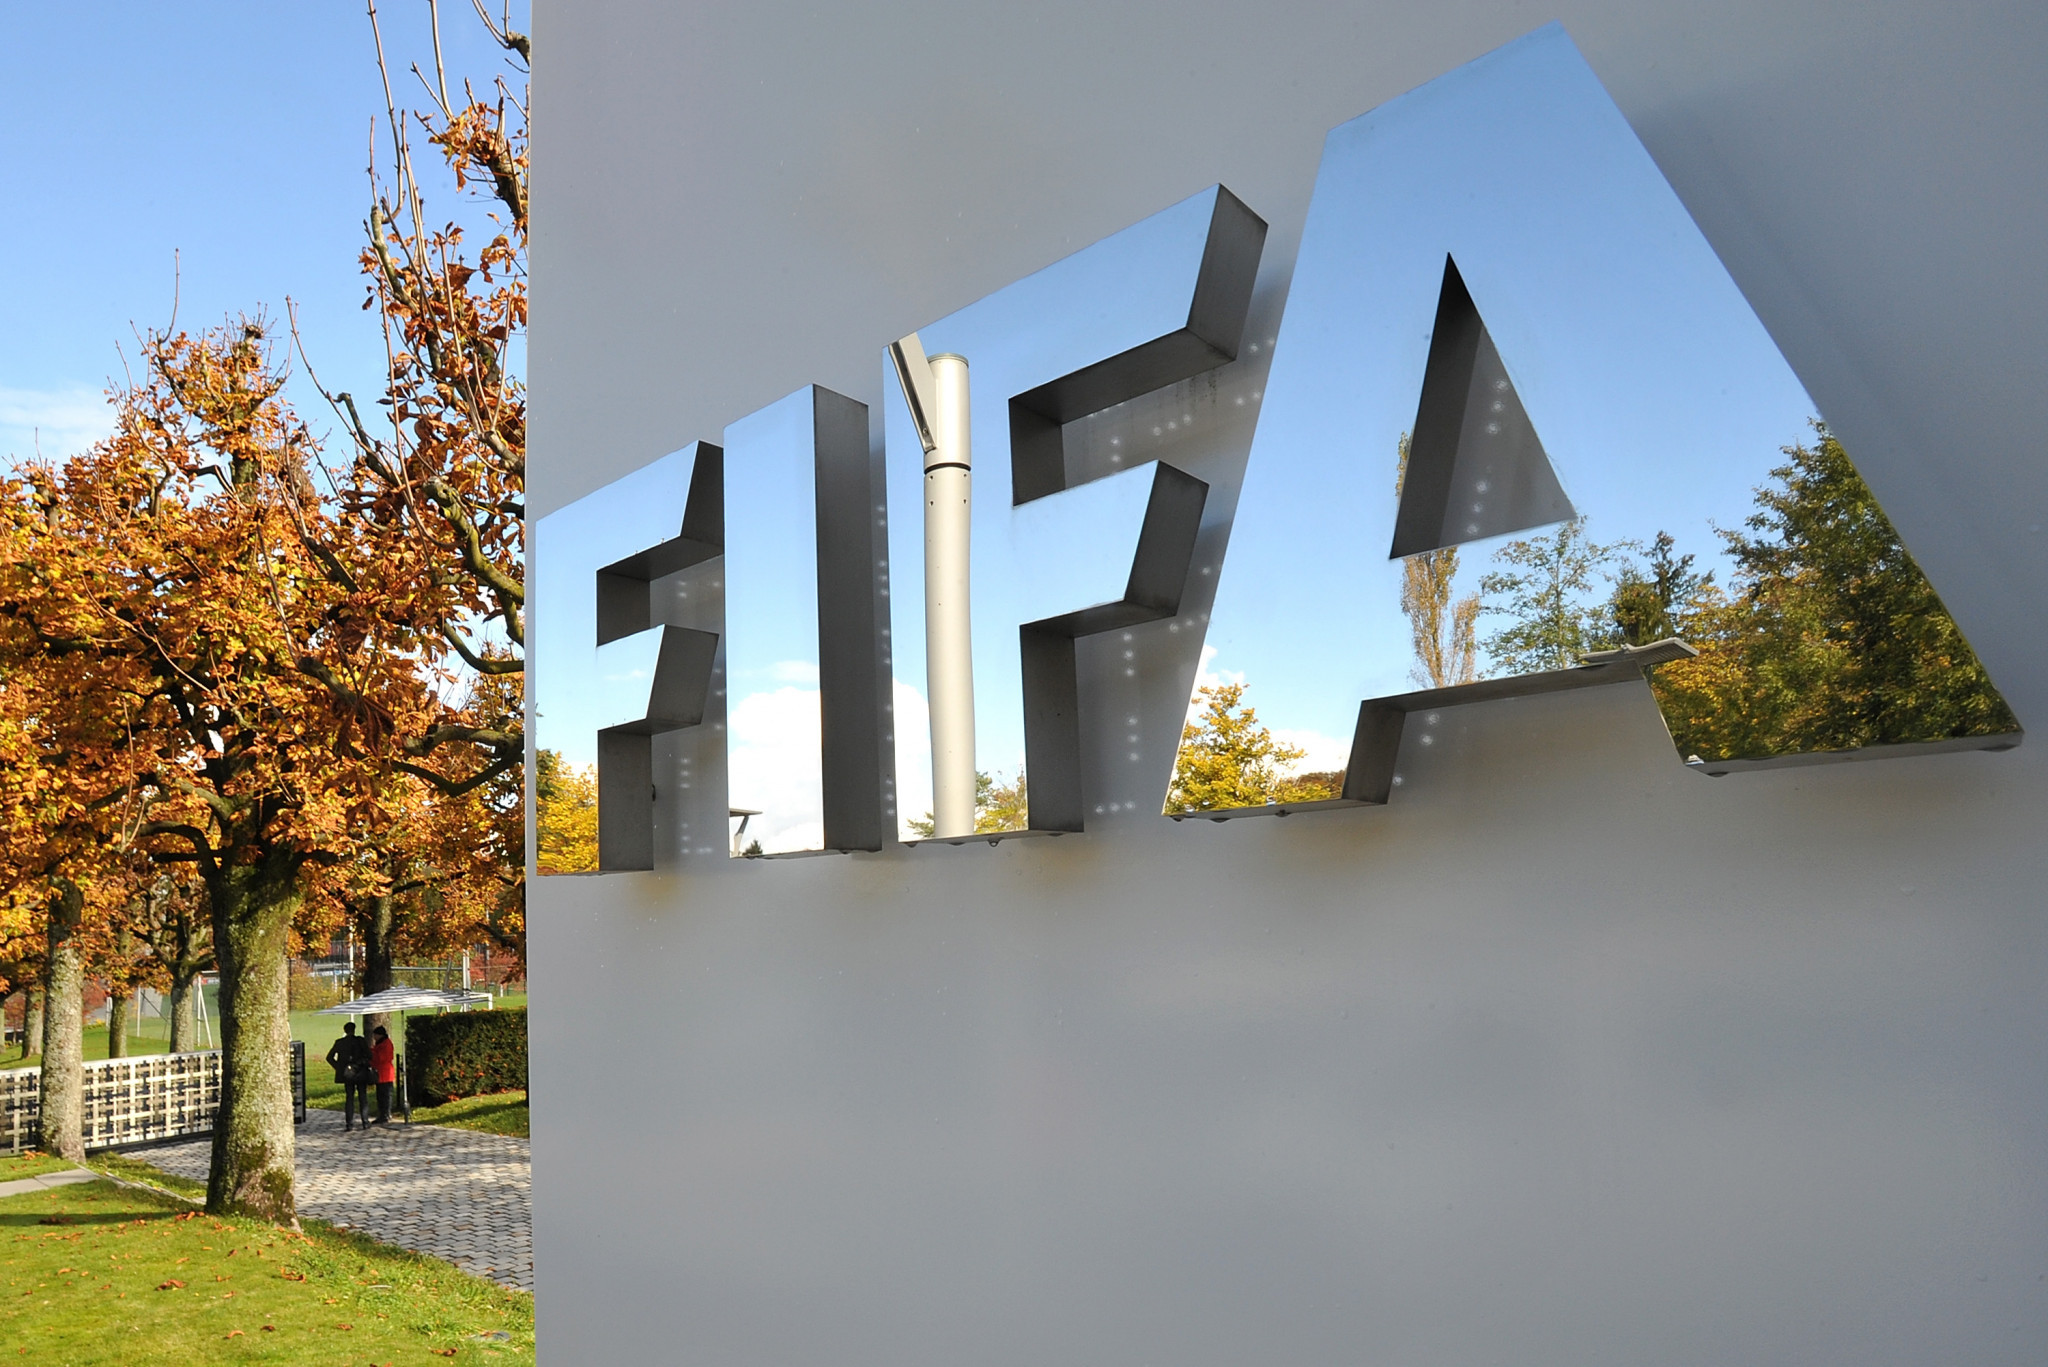 Former media executives indicted in U.S. Federation Internationale de Football Association soccer investigation